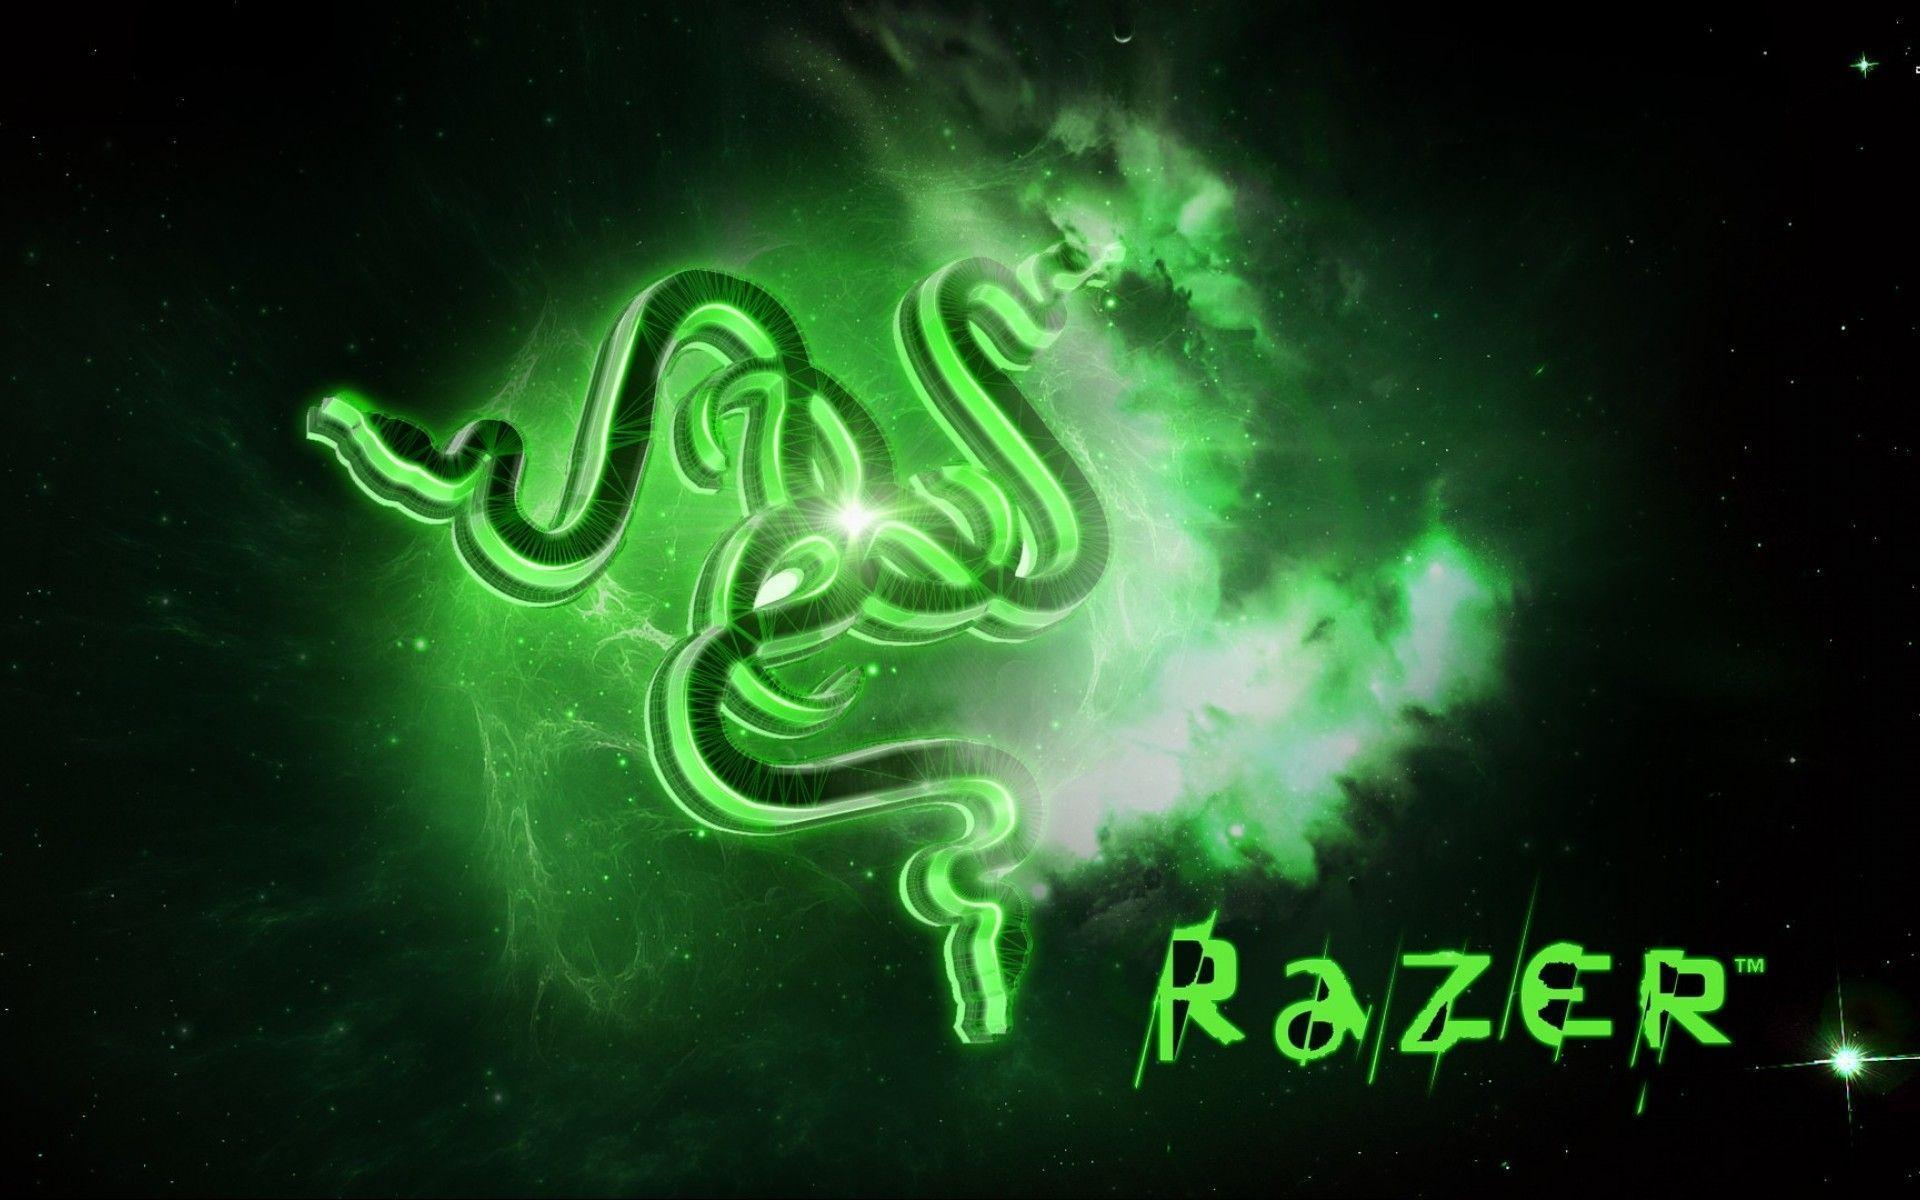 Razer Wallpapers 1920X1080 wallpapers